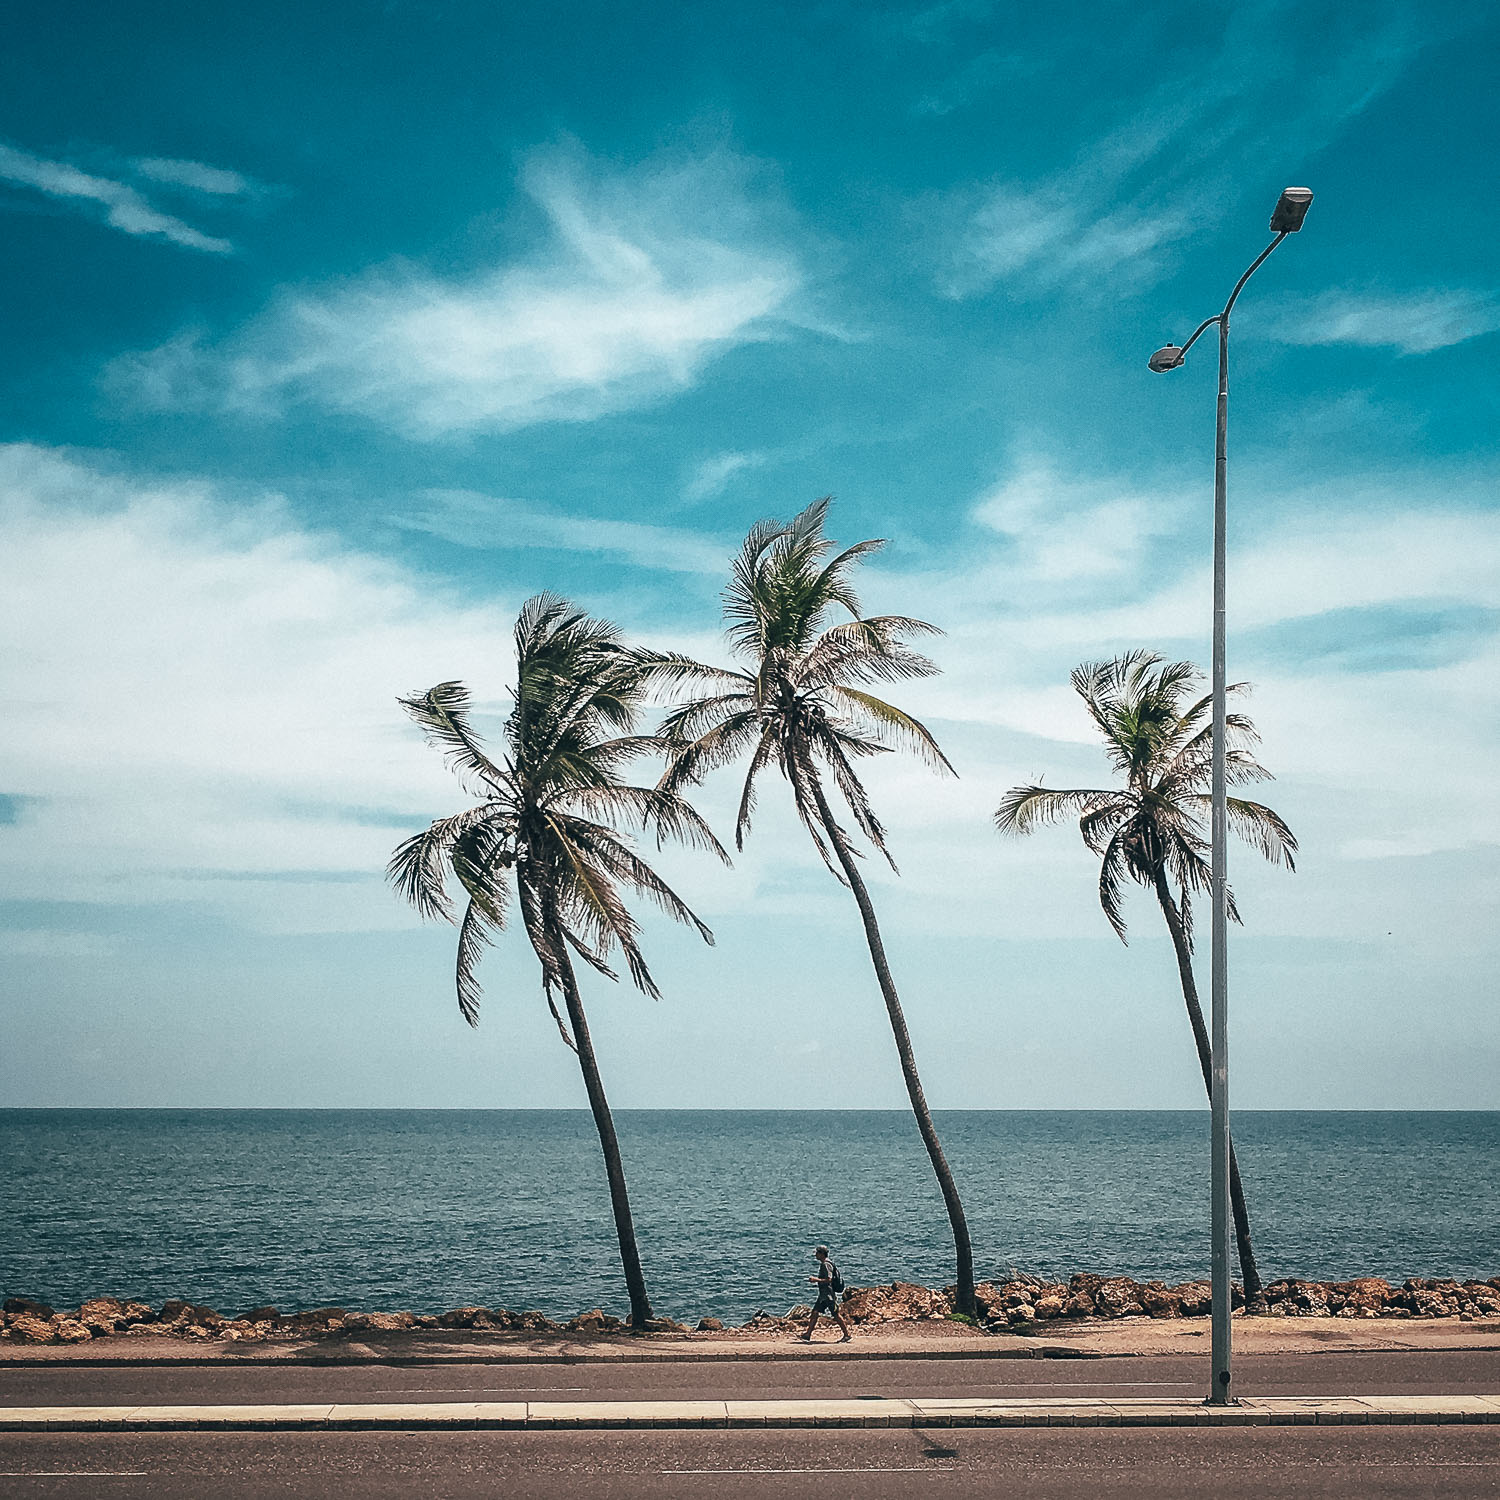 smartphone photography course, mobile photography course, iphone photography, camera app download, procamera, camera fv-5 | ©Karin van Mierlo, Photography Playground, Photo: Cartagena, Colombia